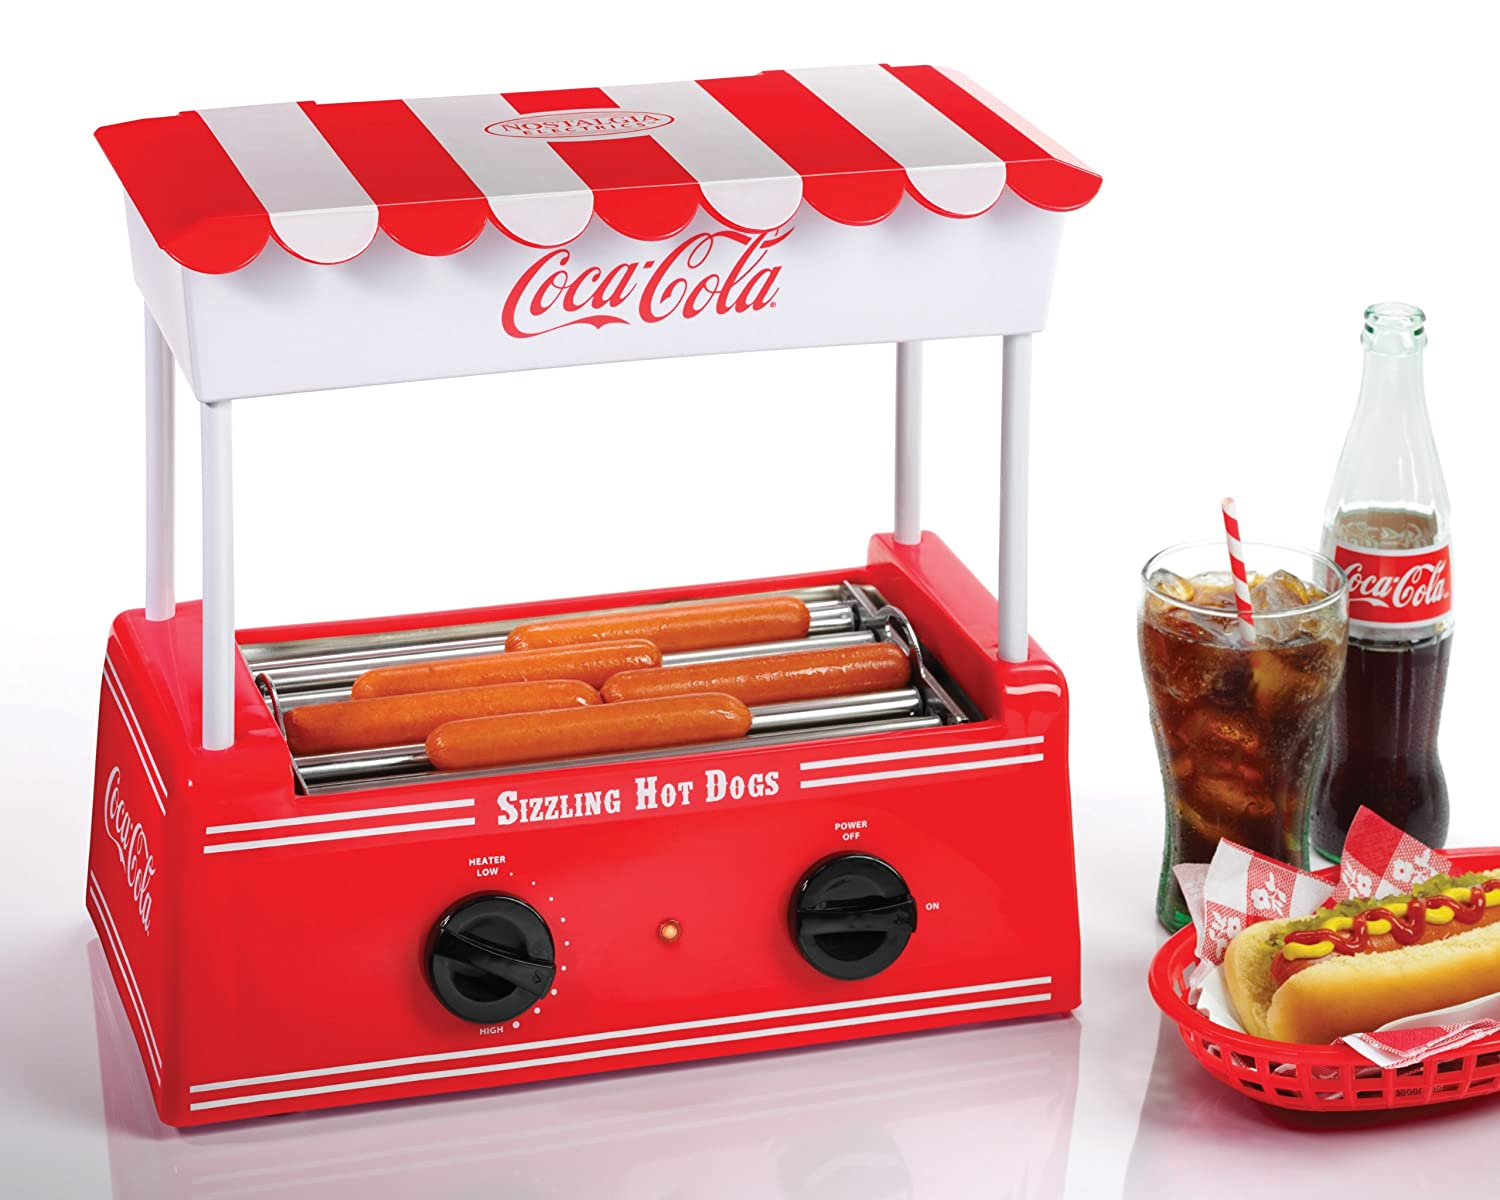 hot dog maker machine retro coke coca cola nostalgia electric roller warmer bun ebay. Black Bedroom Furniture Sets. Home Design Ideas